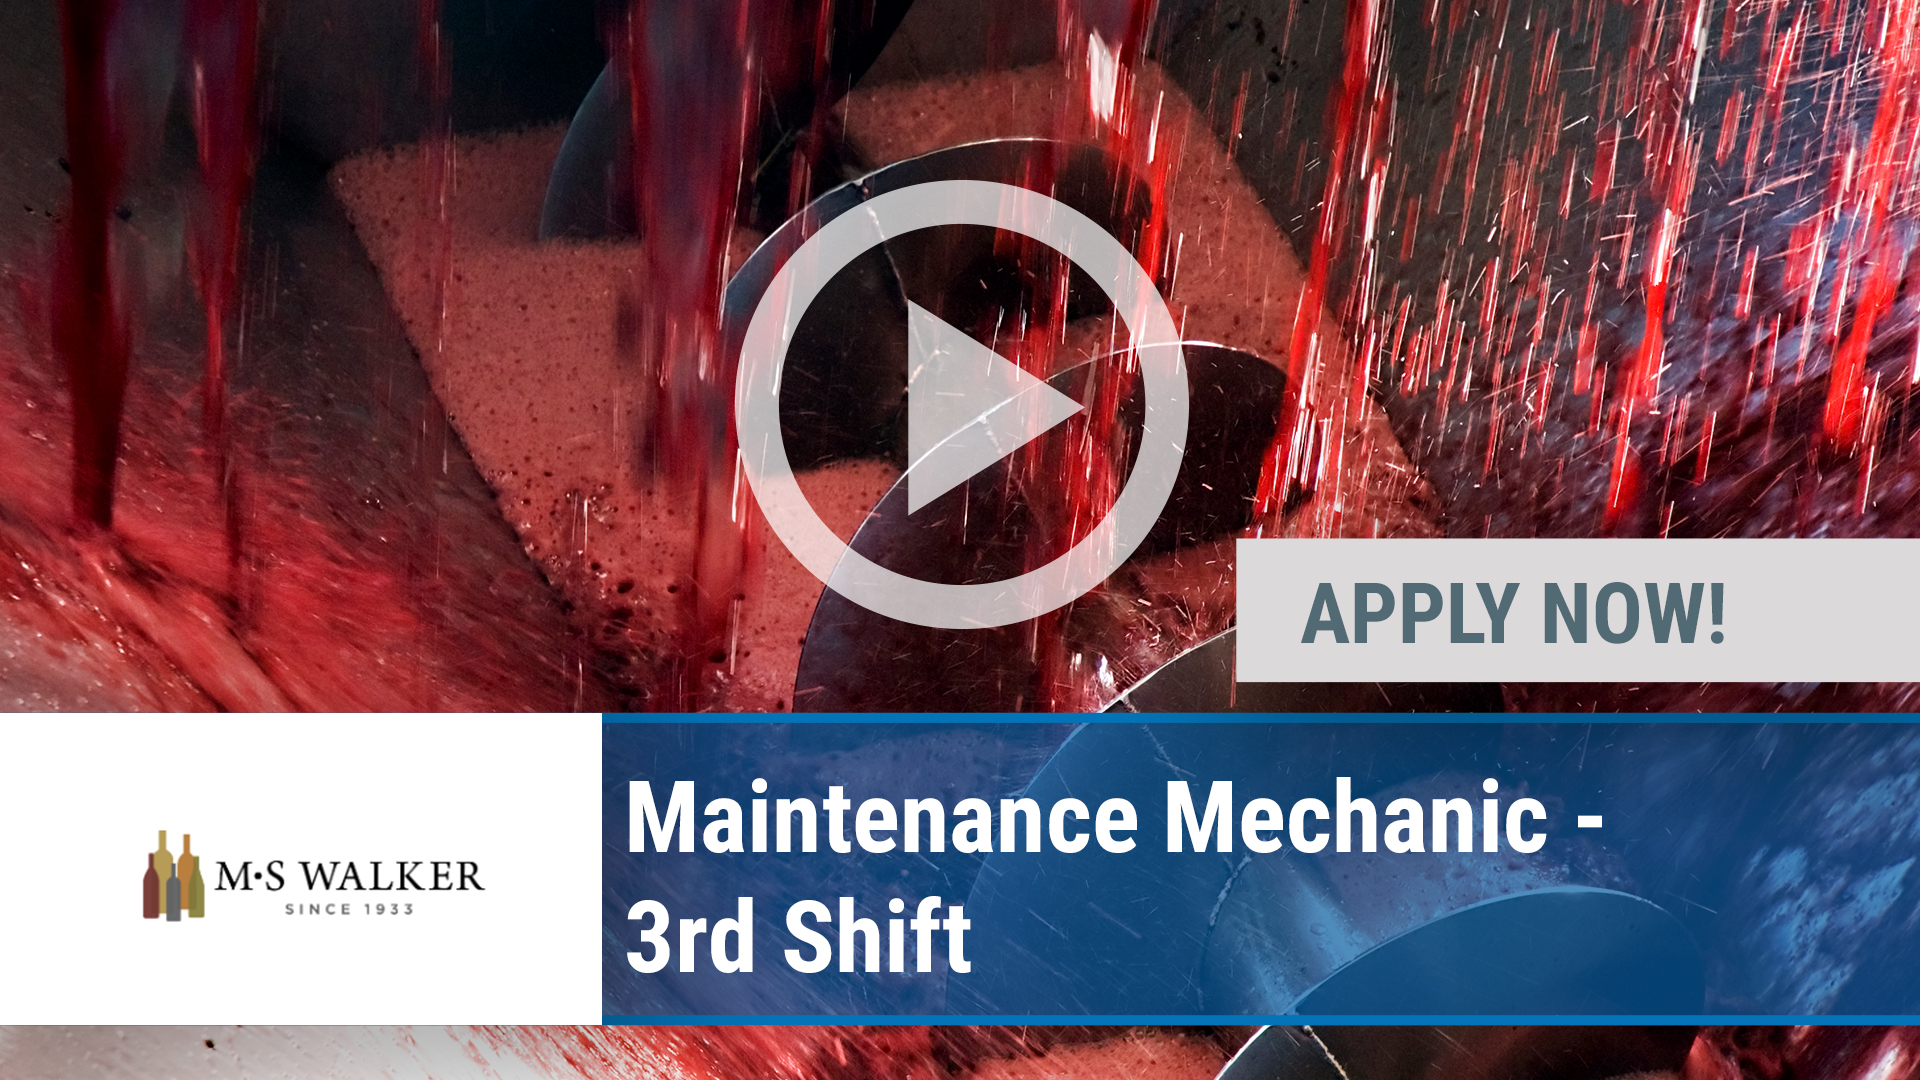 Watch our careers video for available job opening Maintenance Mechanic - 3rd Shift in Norwood, MA